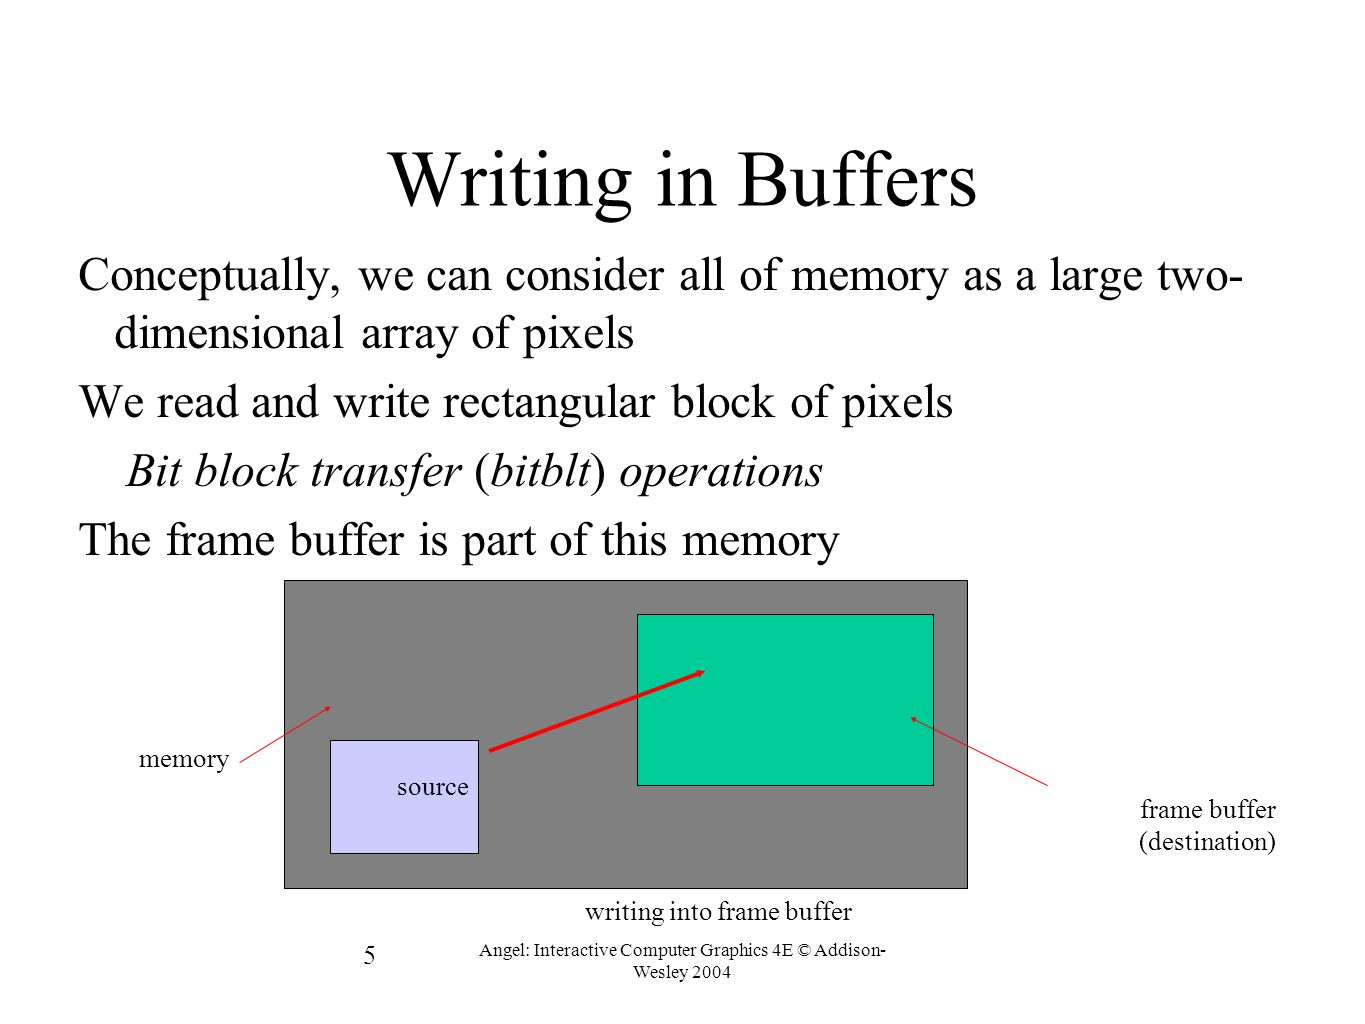 5 Angel: Interactive Computer Graphics 4E © Addison- Wesley 2004 Writing in Buffers Conceptually, we can consider all of memory as a large two- dimens